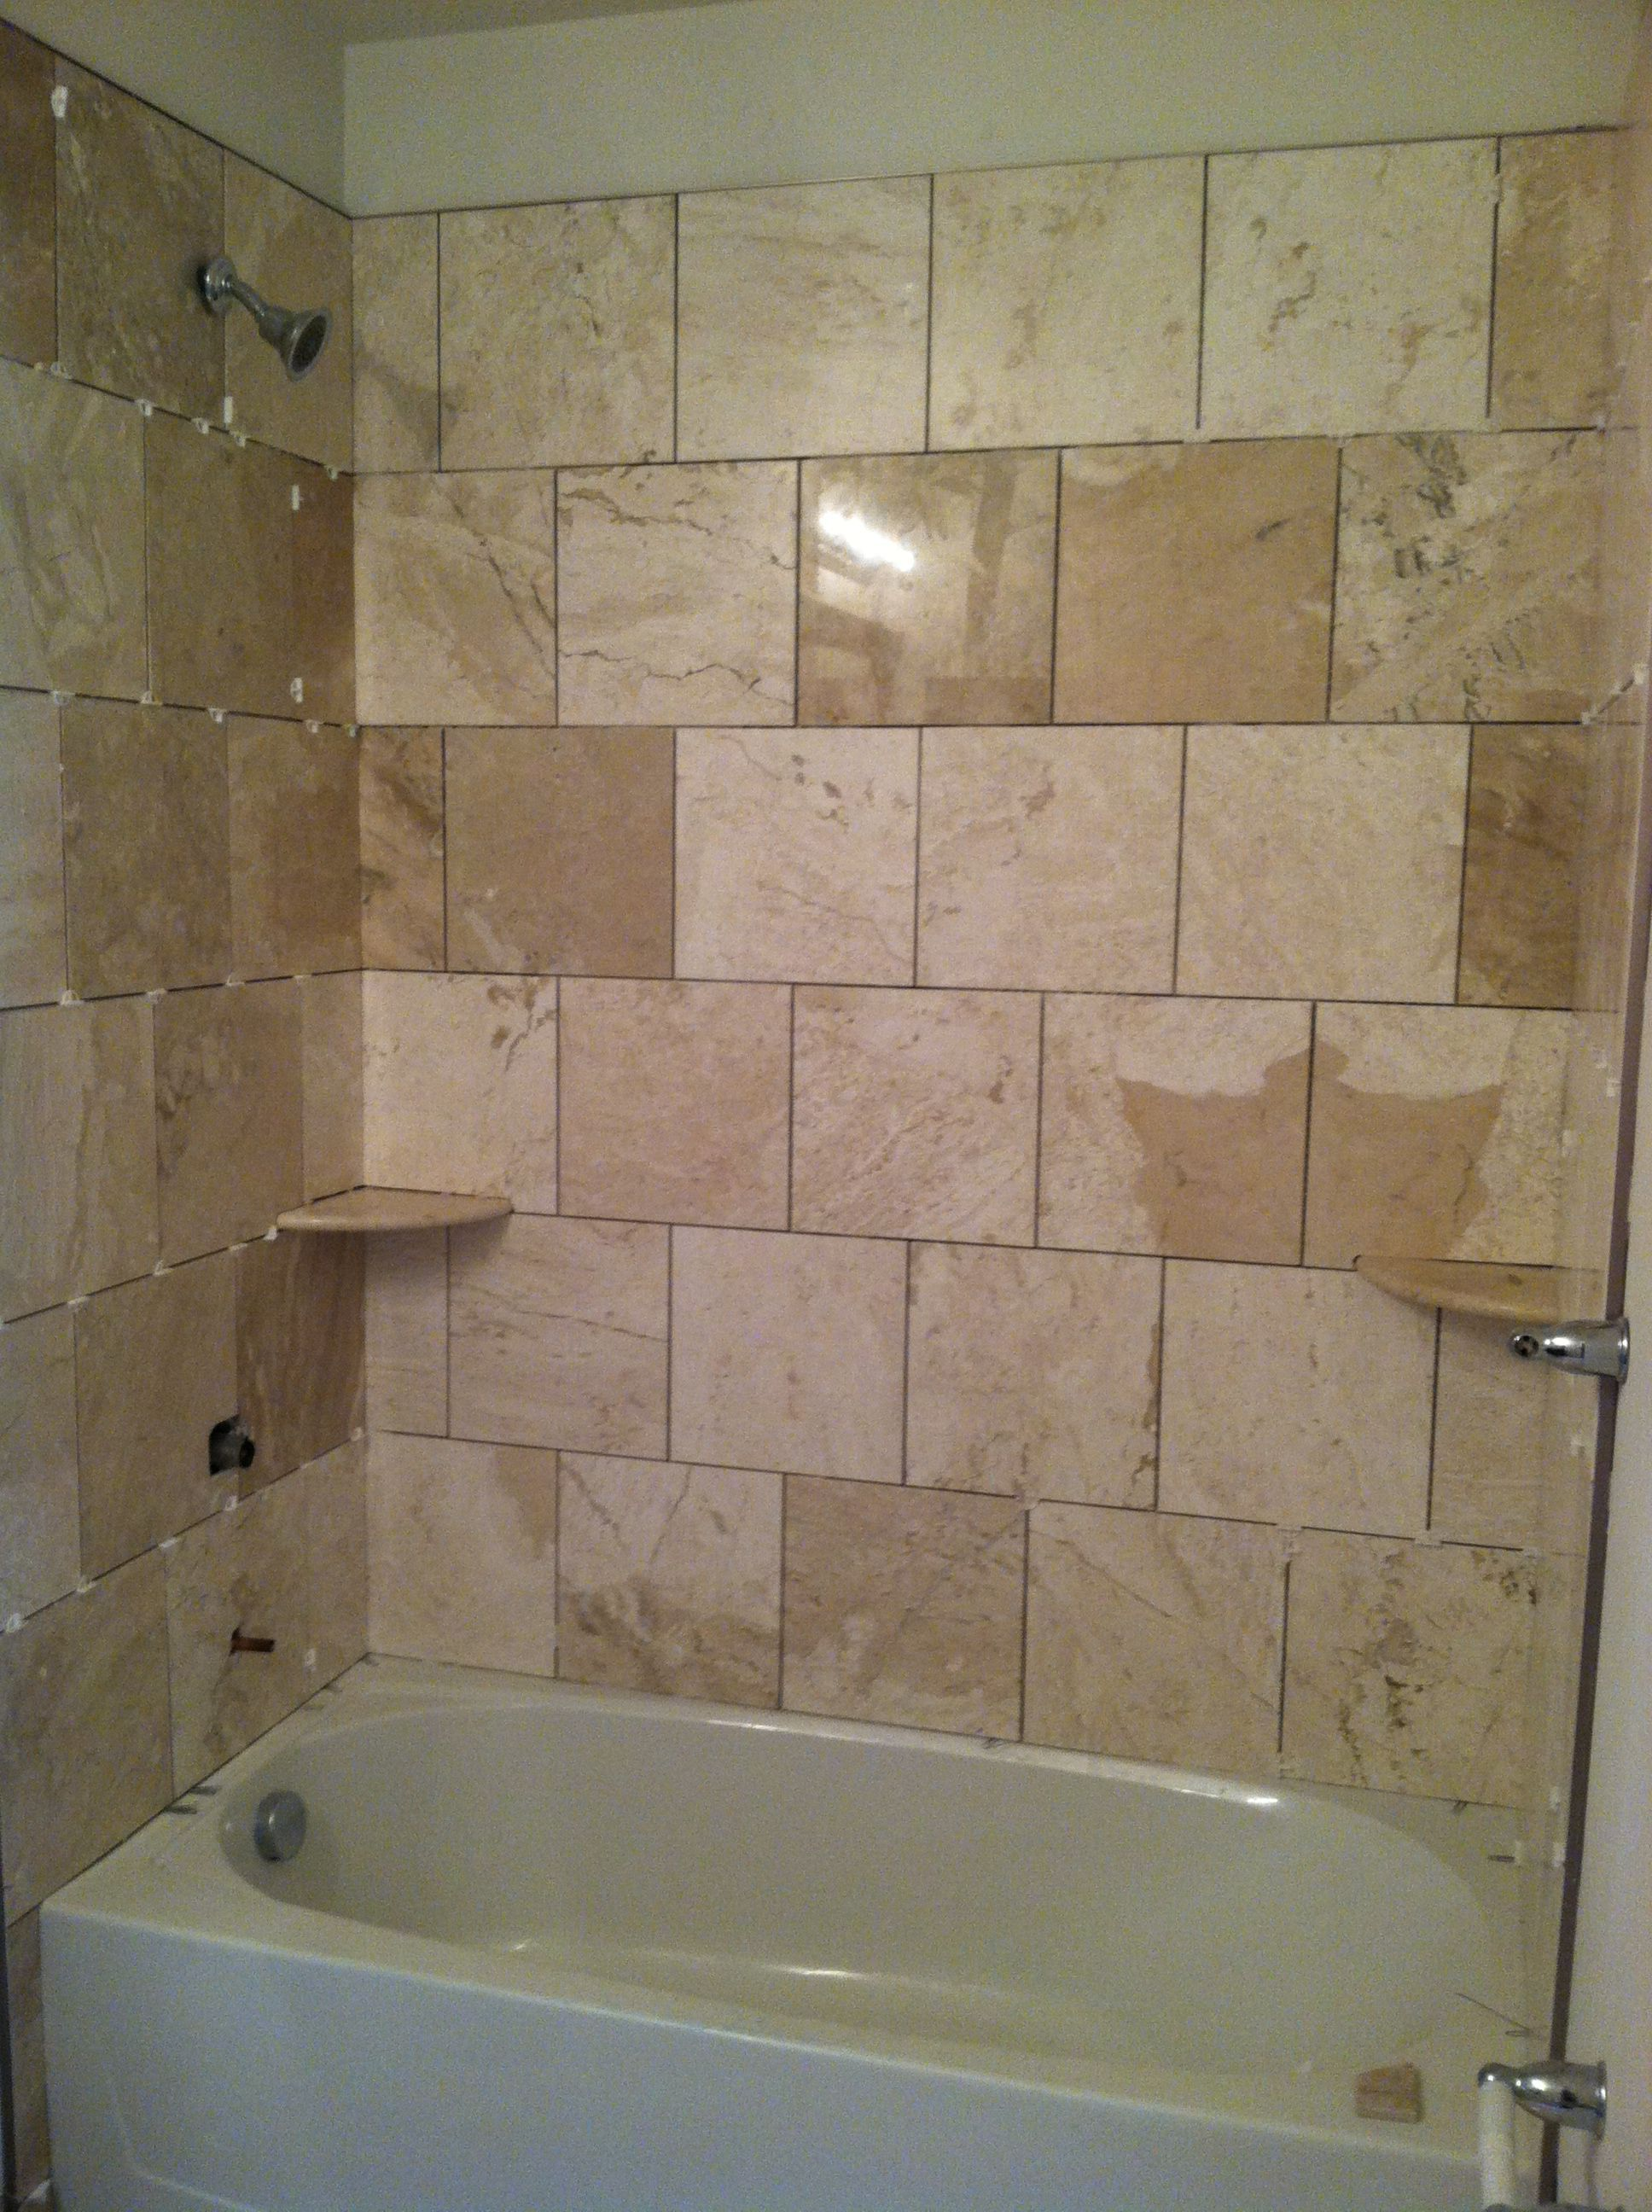 cost of tile for bathroom floor%0A Lush Wall Decoration With Stylish Shower Tile Ideas In Black And